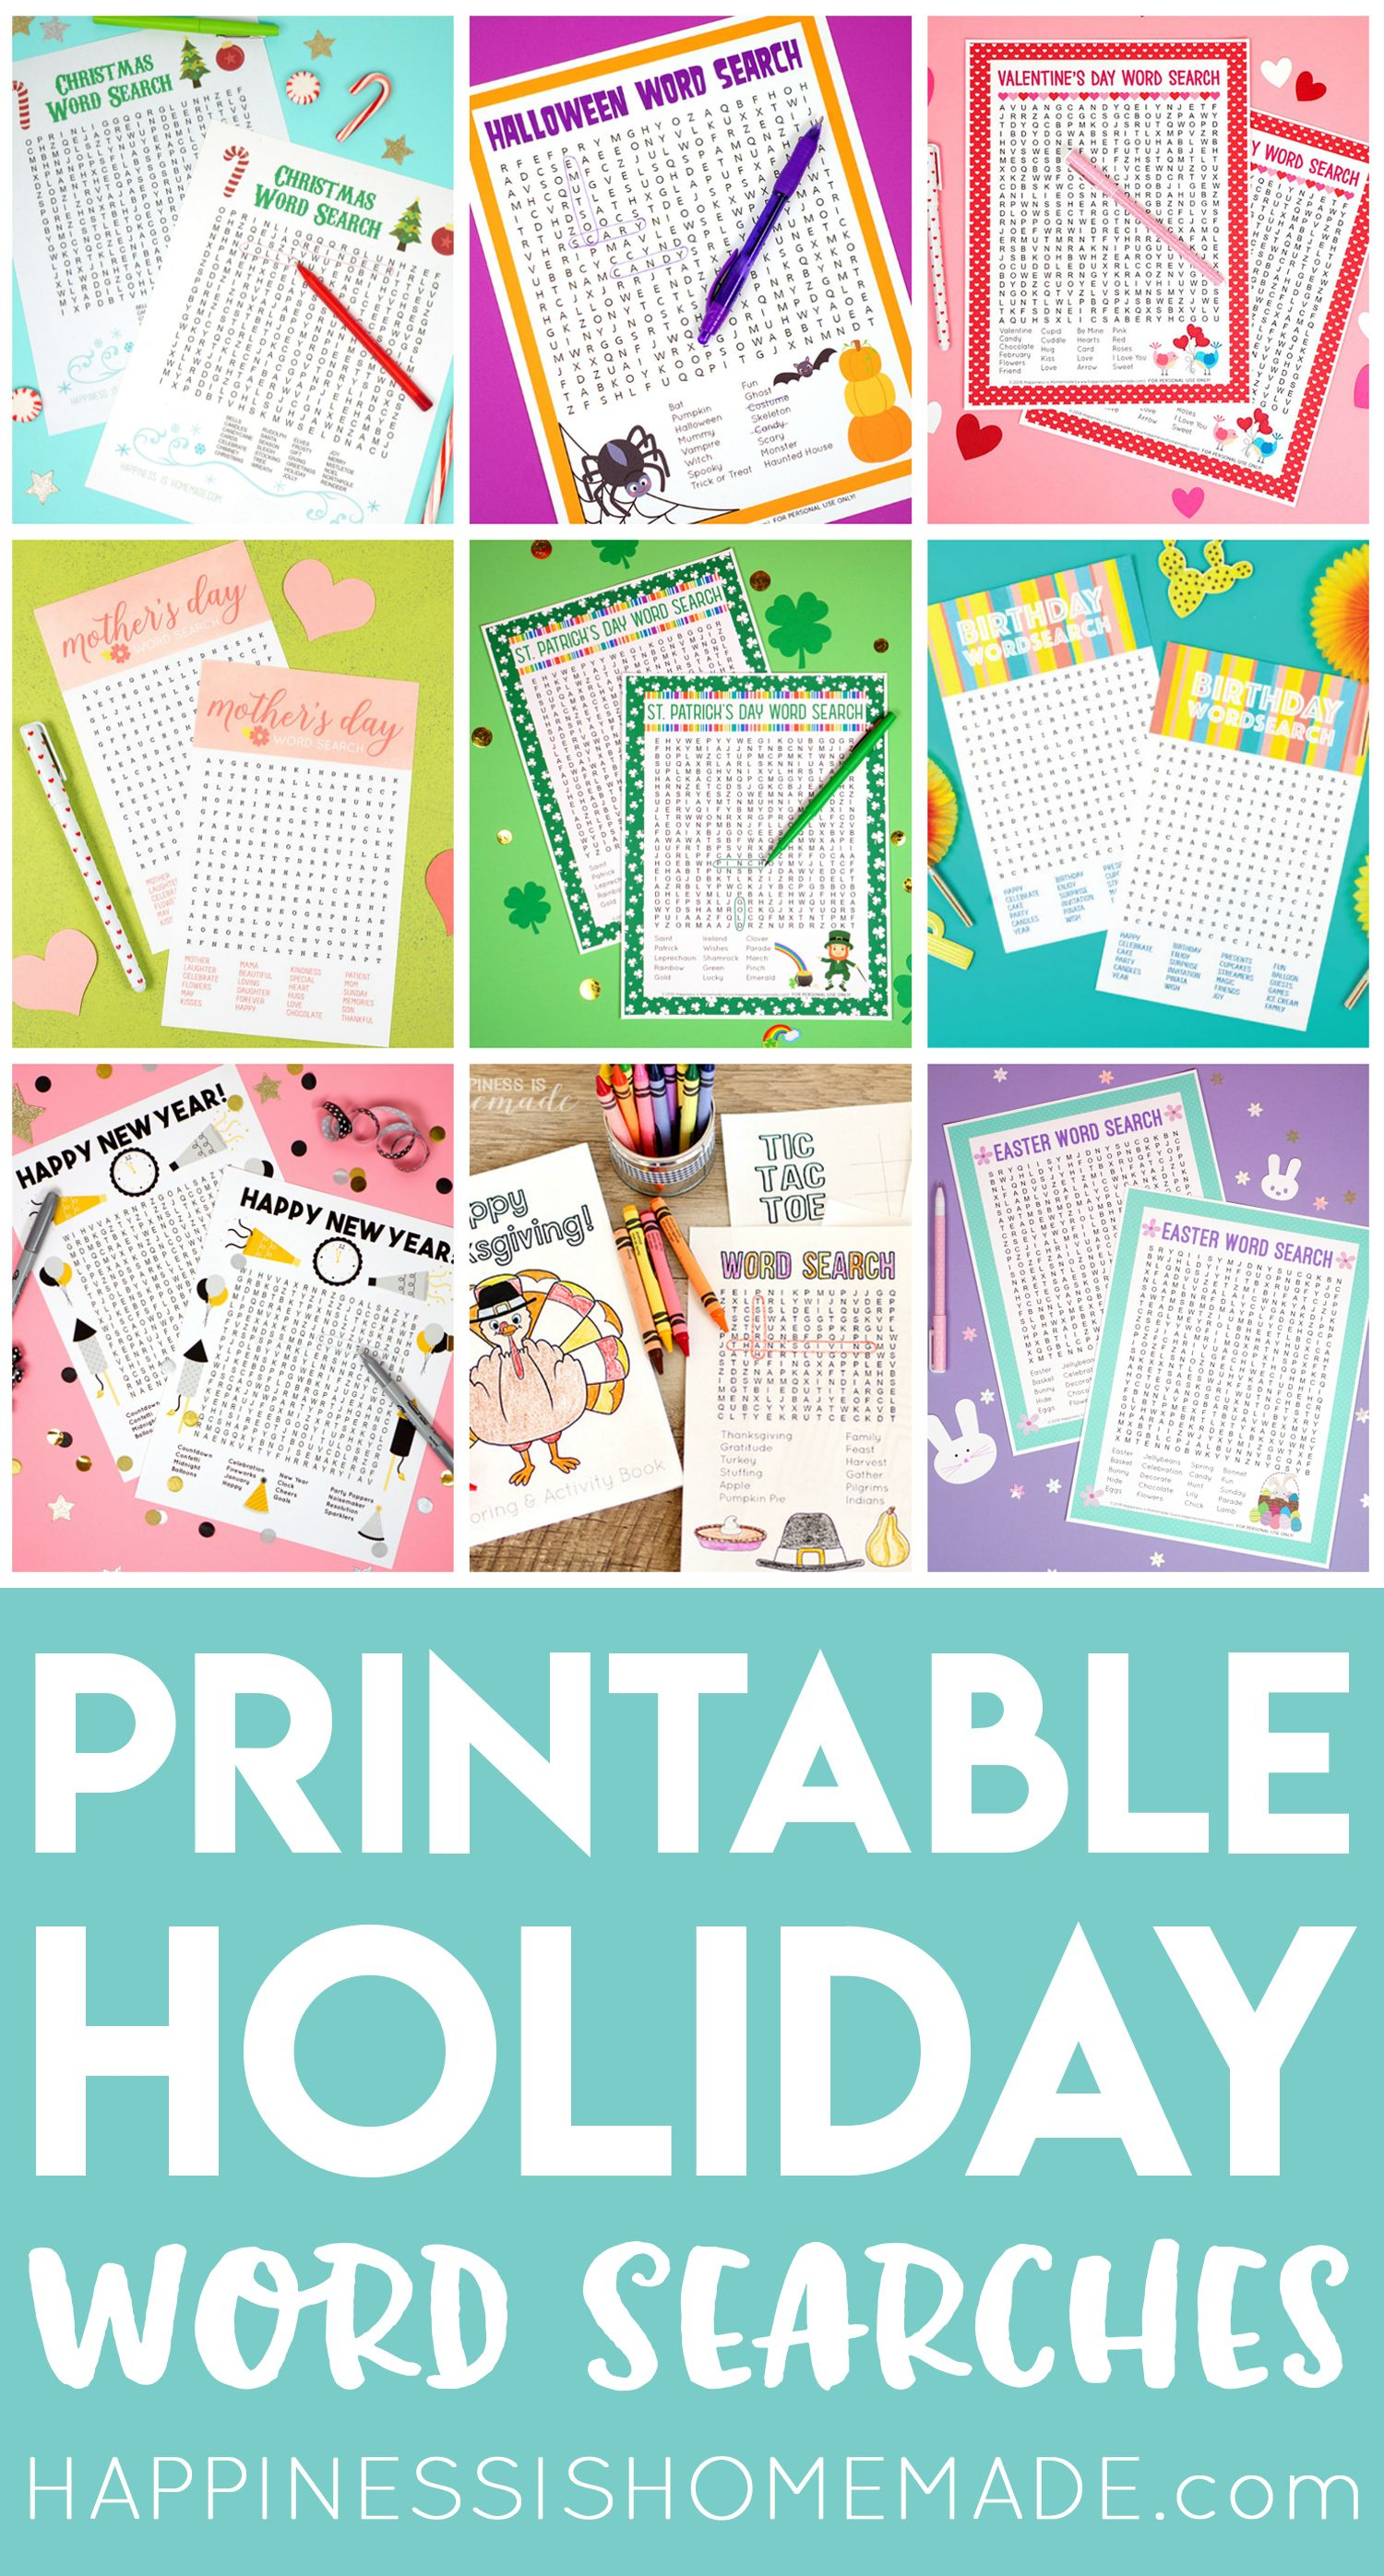 Printable Word Searches For Every Holiday And Occasion